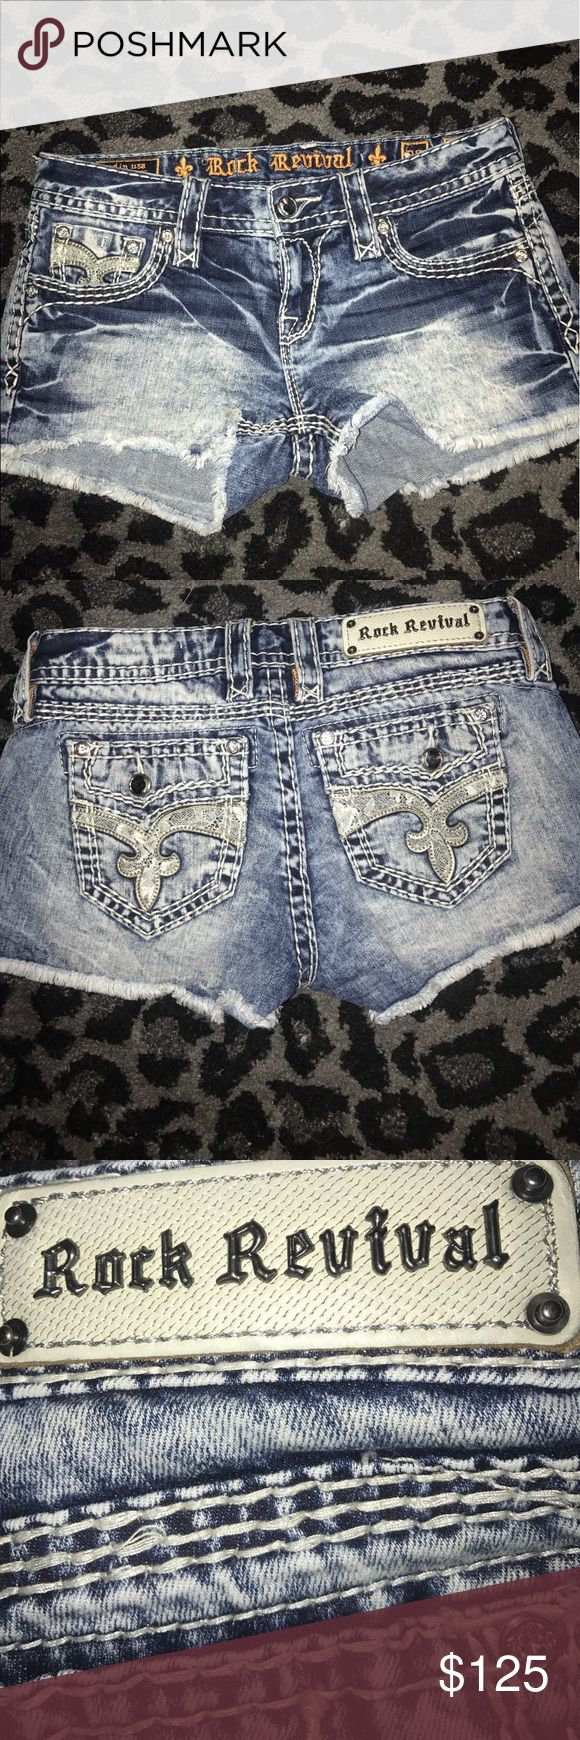 Rock revival jean shorts 26 Octavia Like new. Worn 1 time! Offers welcome. Will trade for rock revival Boris jean shorts 26 or 27. Rock Revival Shorts Jean Shorts